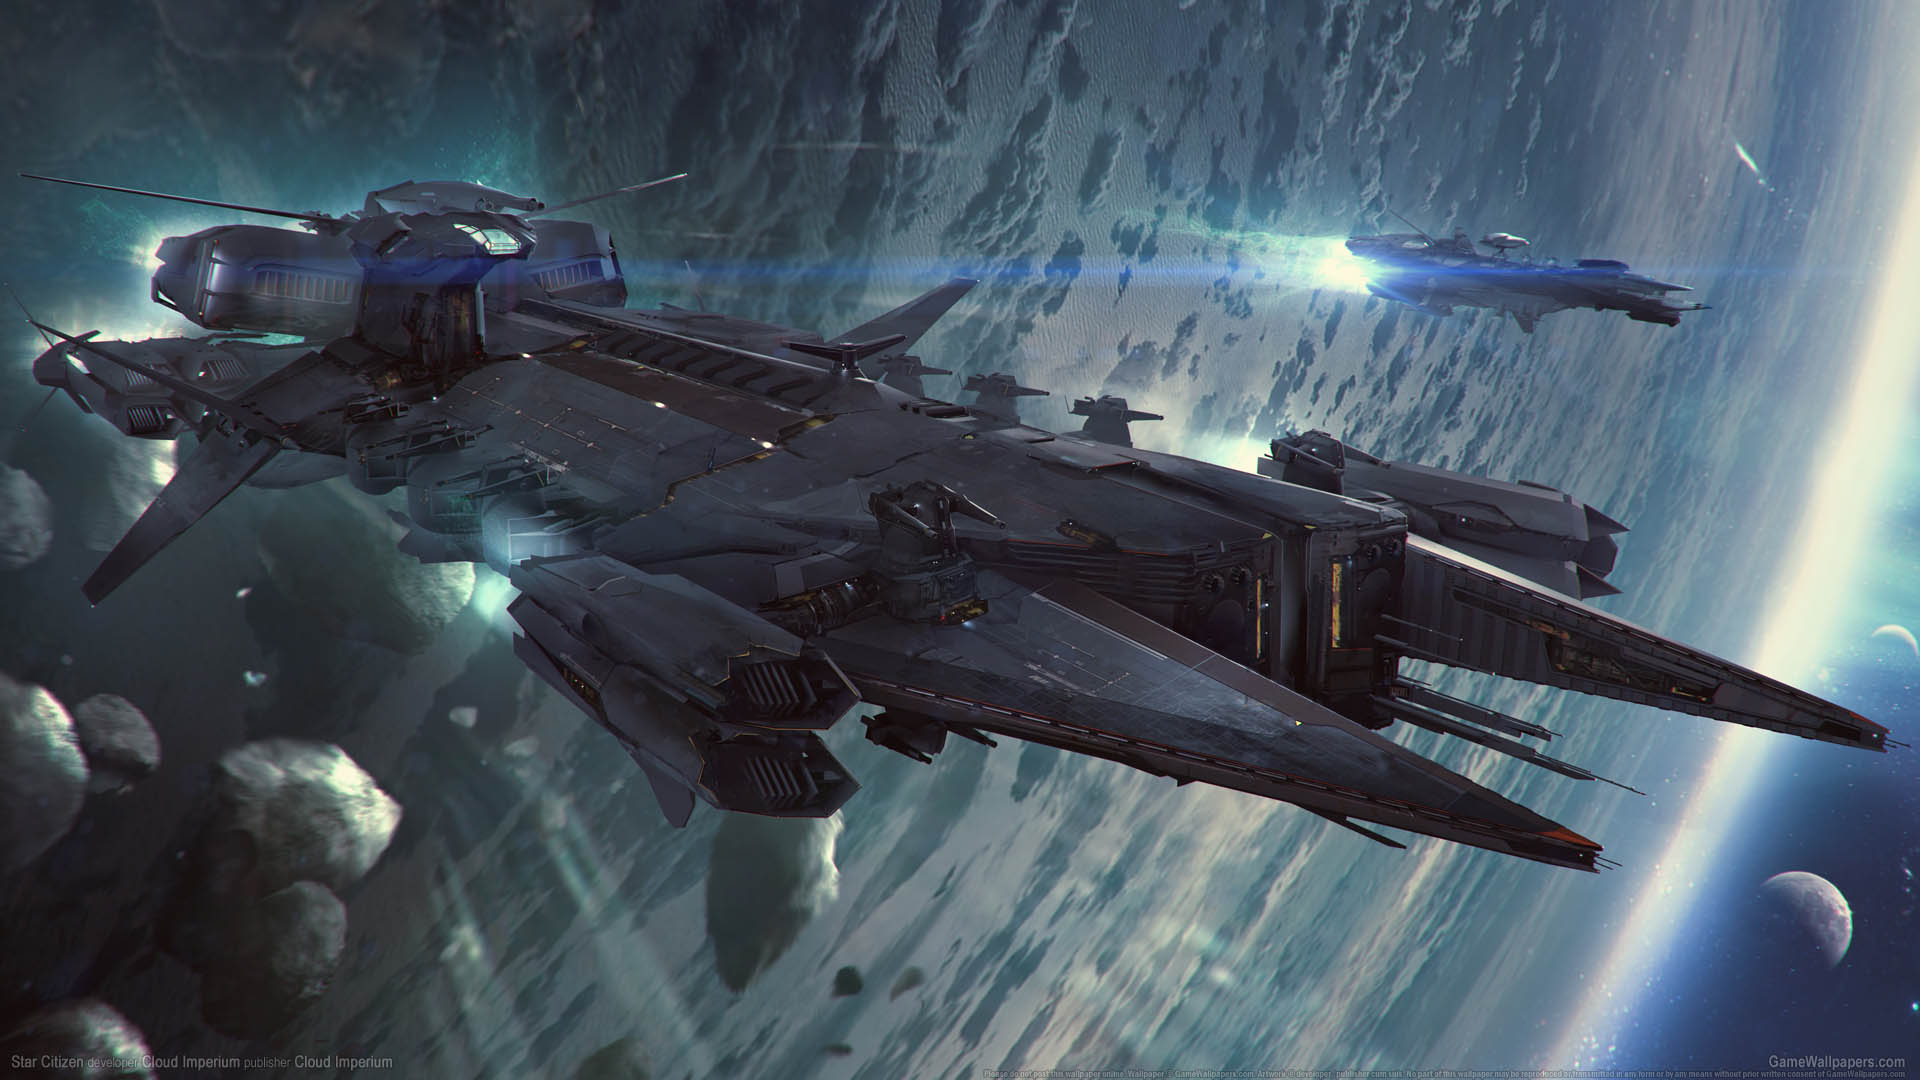 Star Citizen Wallpaper 1080p: Star Citizen Wallpaper 10 1920x1080